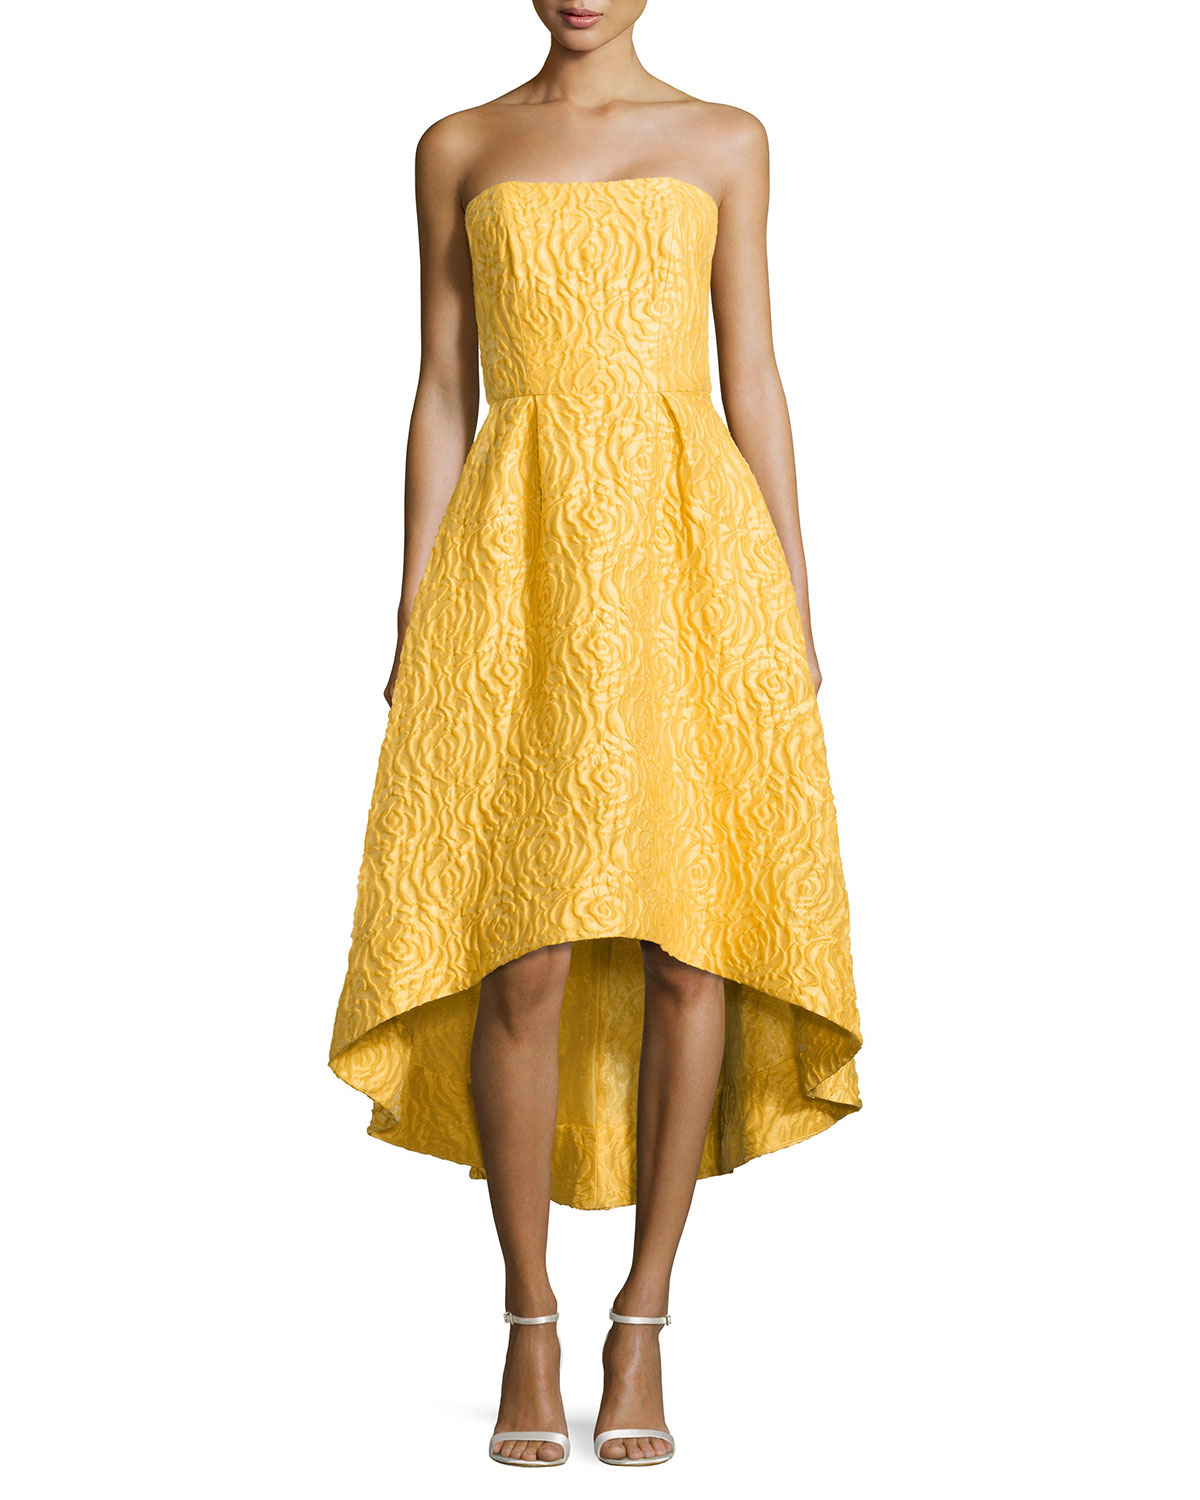 7c425f173606 ML Monique Lhuillier Strapless High-low Cocktail Dress in Yellow - Lyst